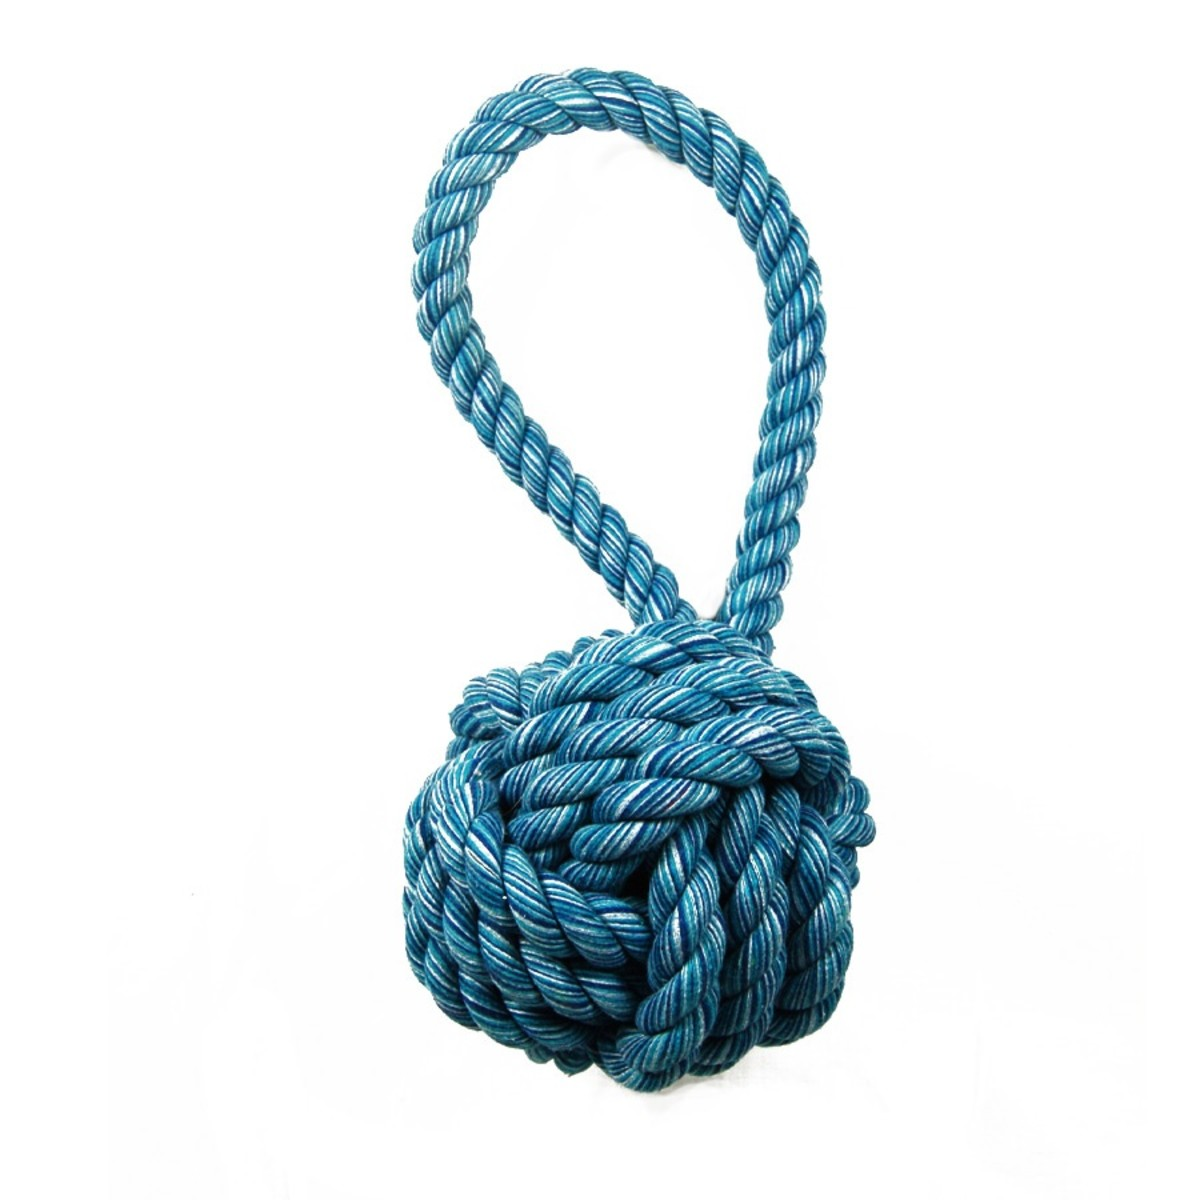 Ropes with knots last much longer than those without.